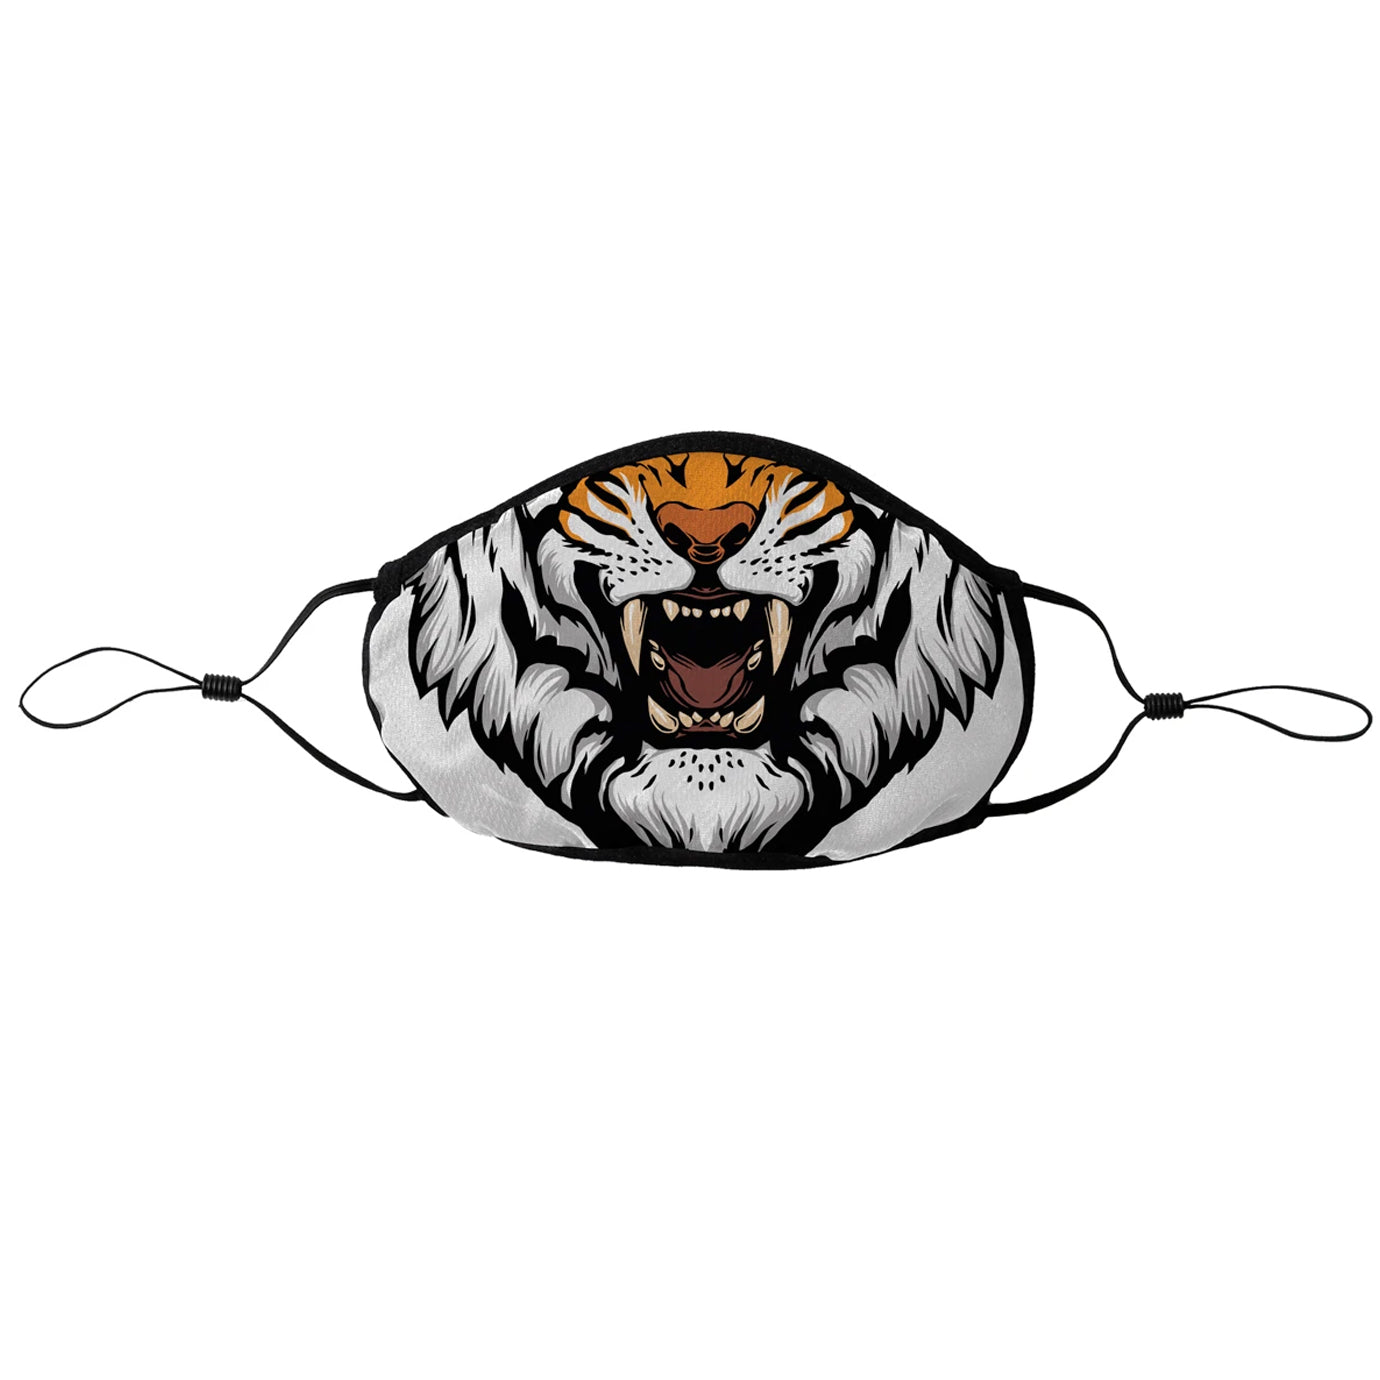 TIGER KING TOGGLE